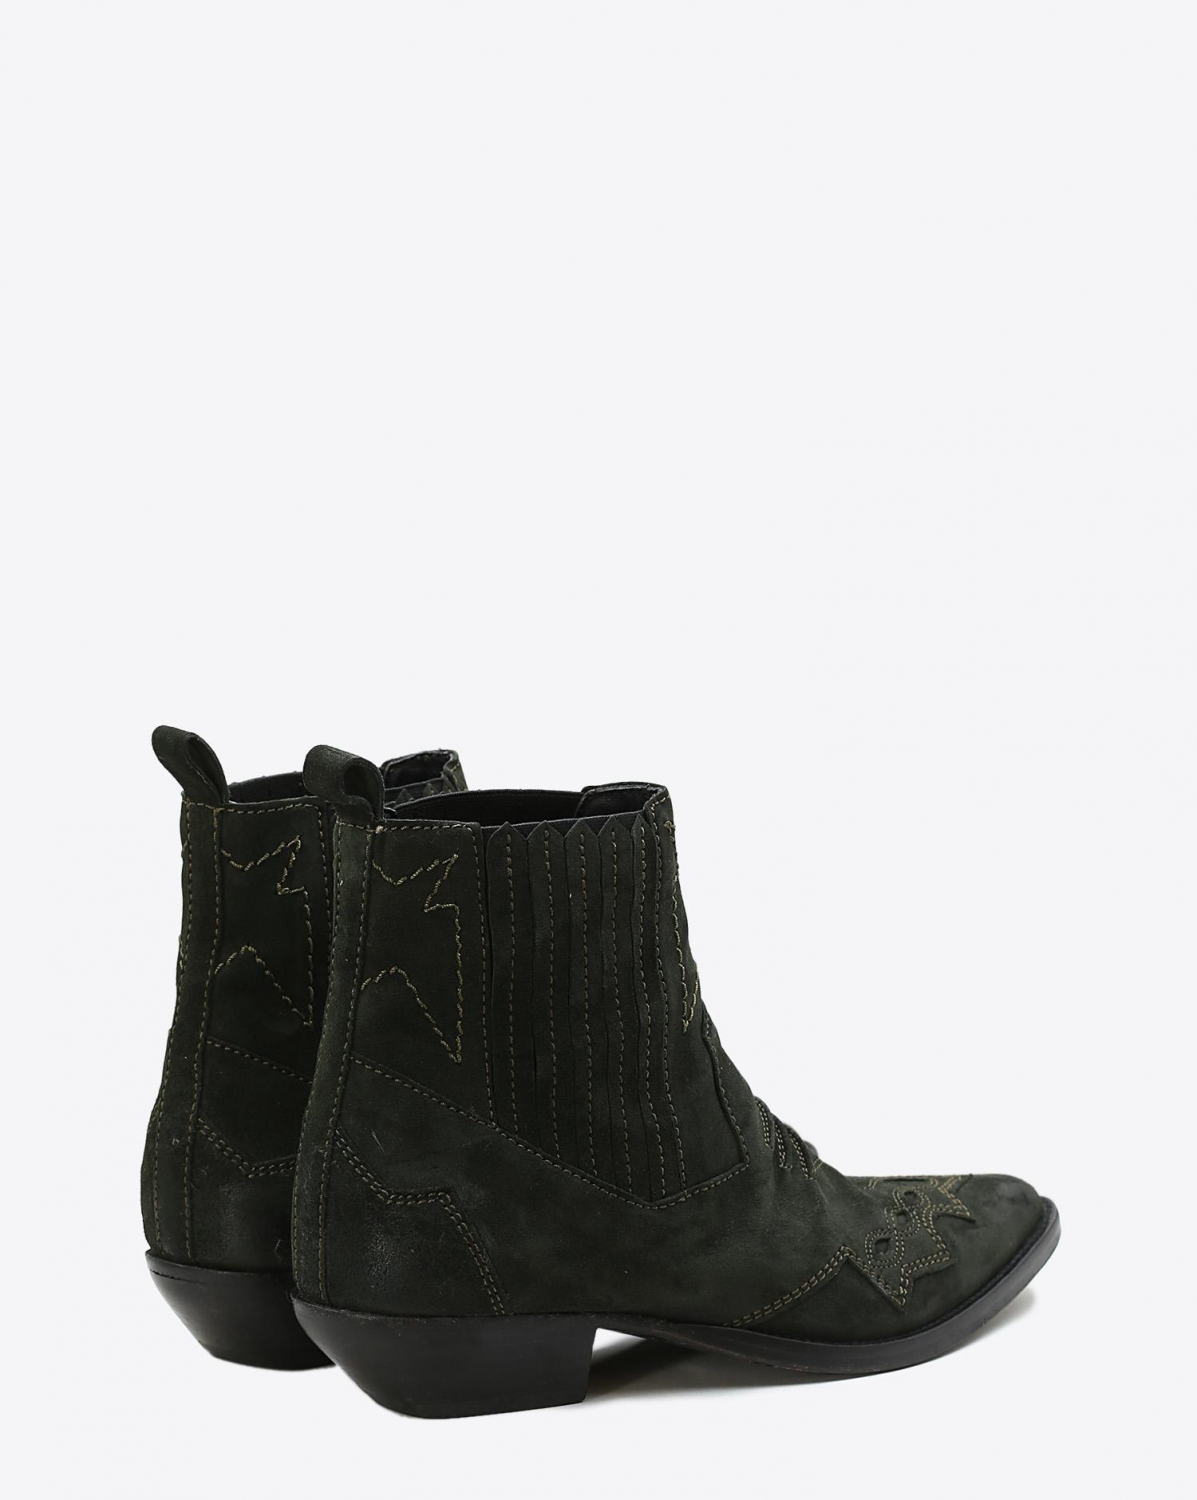 Roseanna Chaussures Boots Santiags TUCSON - Forêt